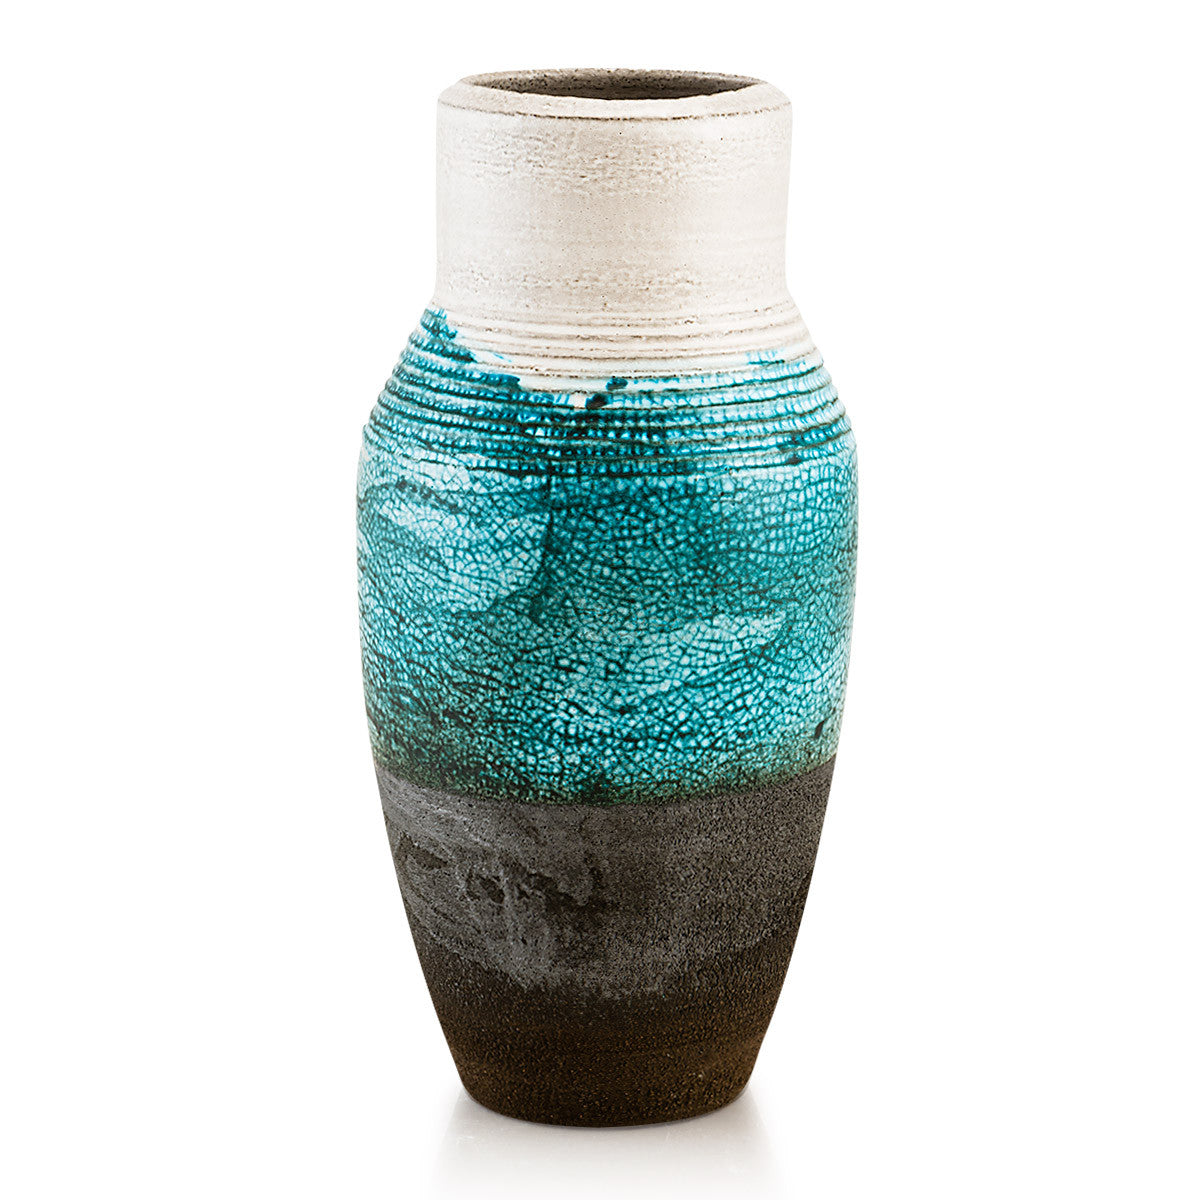 Ceramic vase, Modern design, Nautical decor, reactive glaze